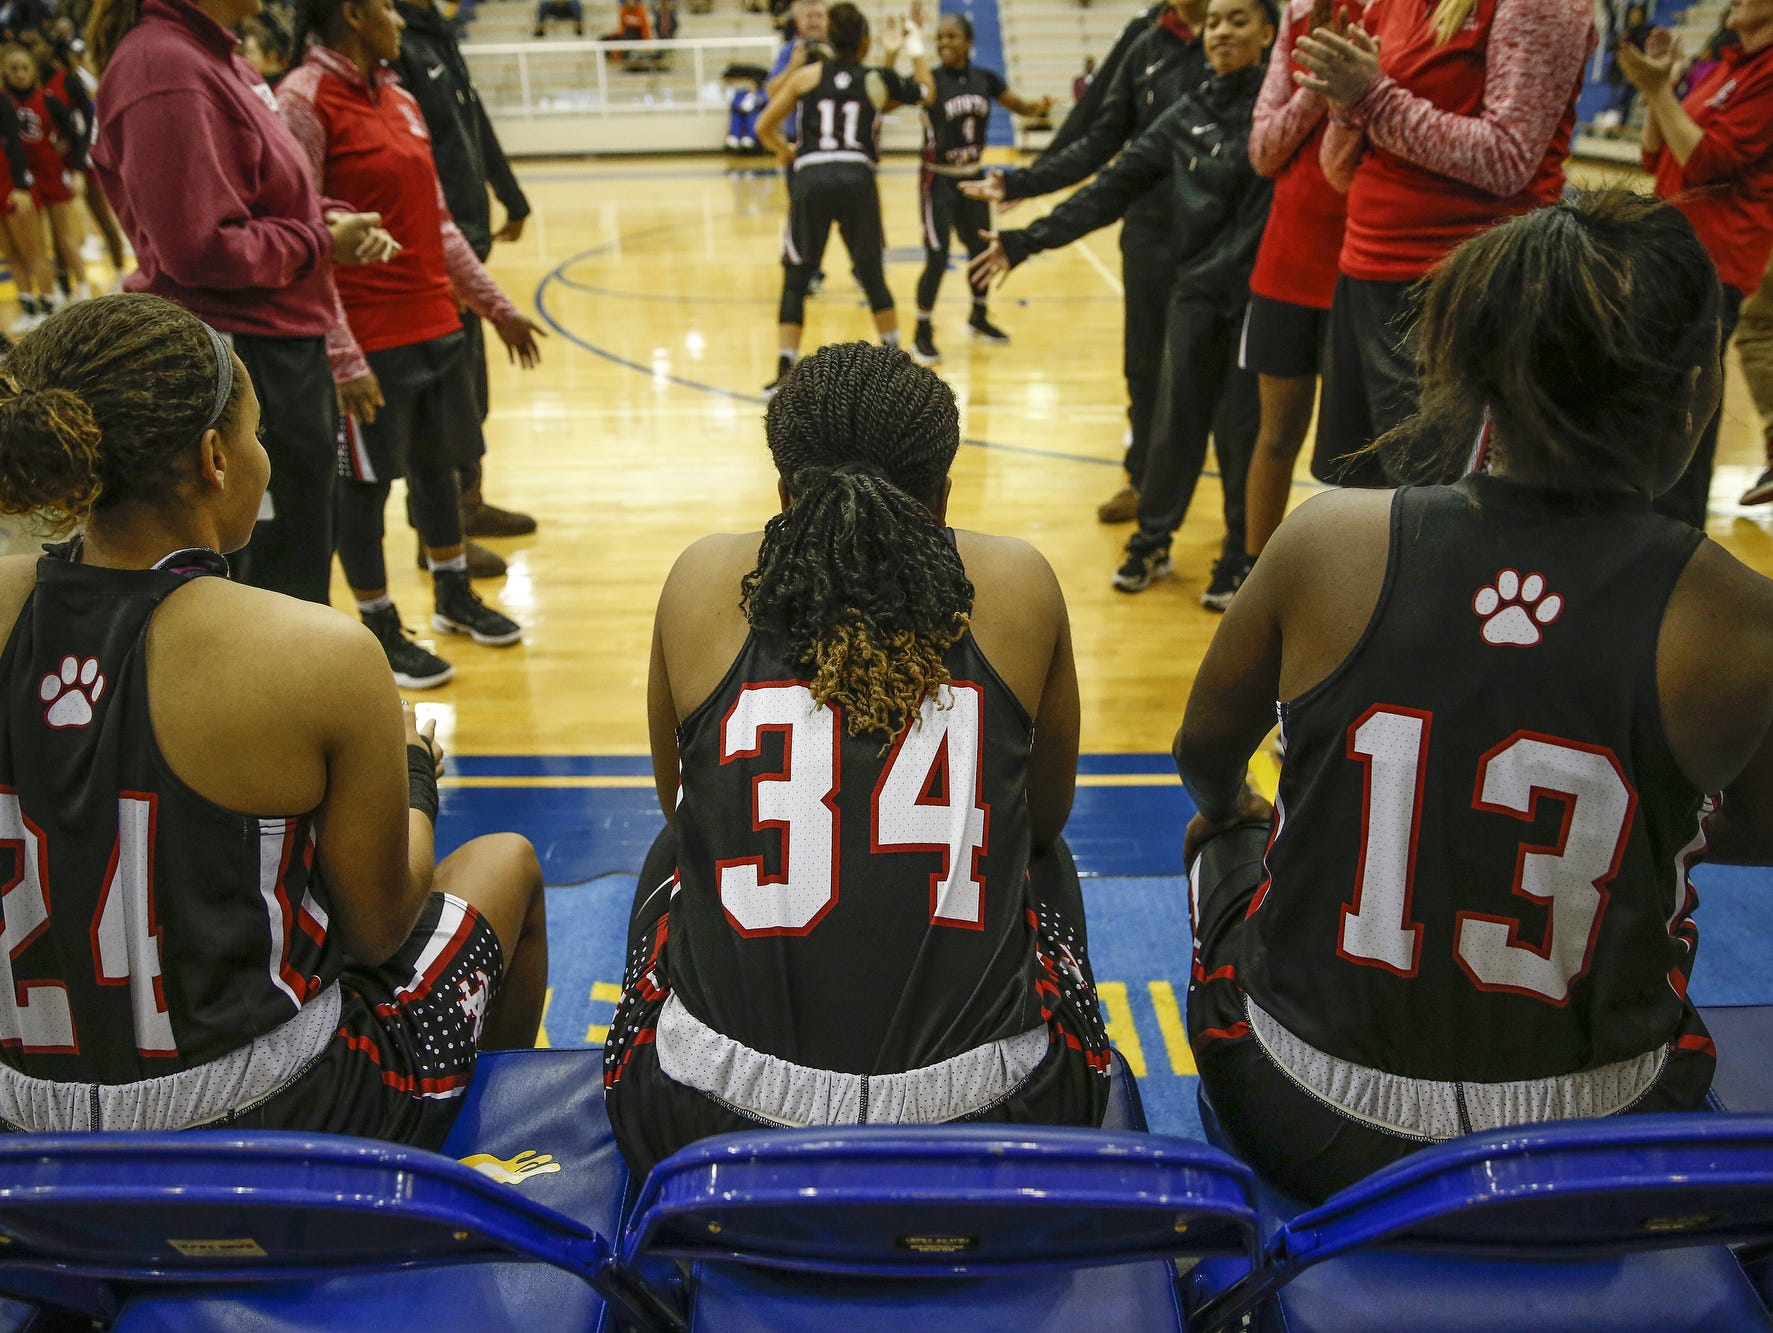 North Central Panthers' Ajanae' Thomas (34) waits to be introduced before the Panthers' game against the Carmel on Dec. 16, 2016. Thomas wears the number 34 in honor of her late mother Nicole.